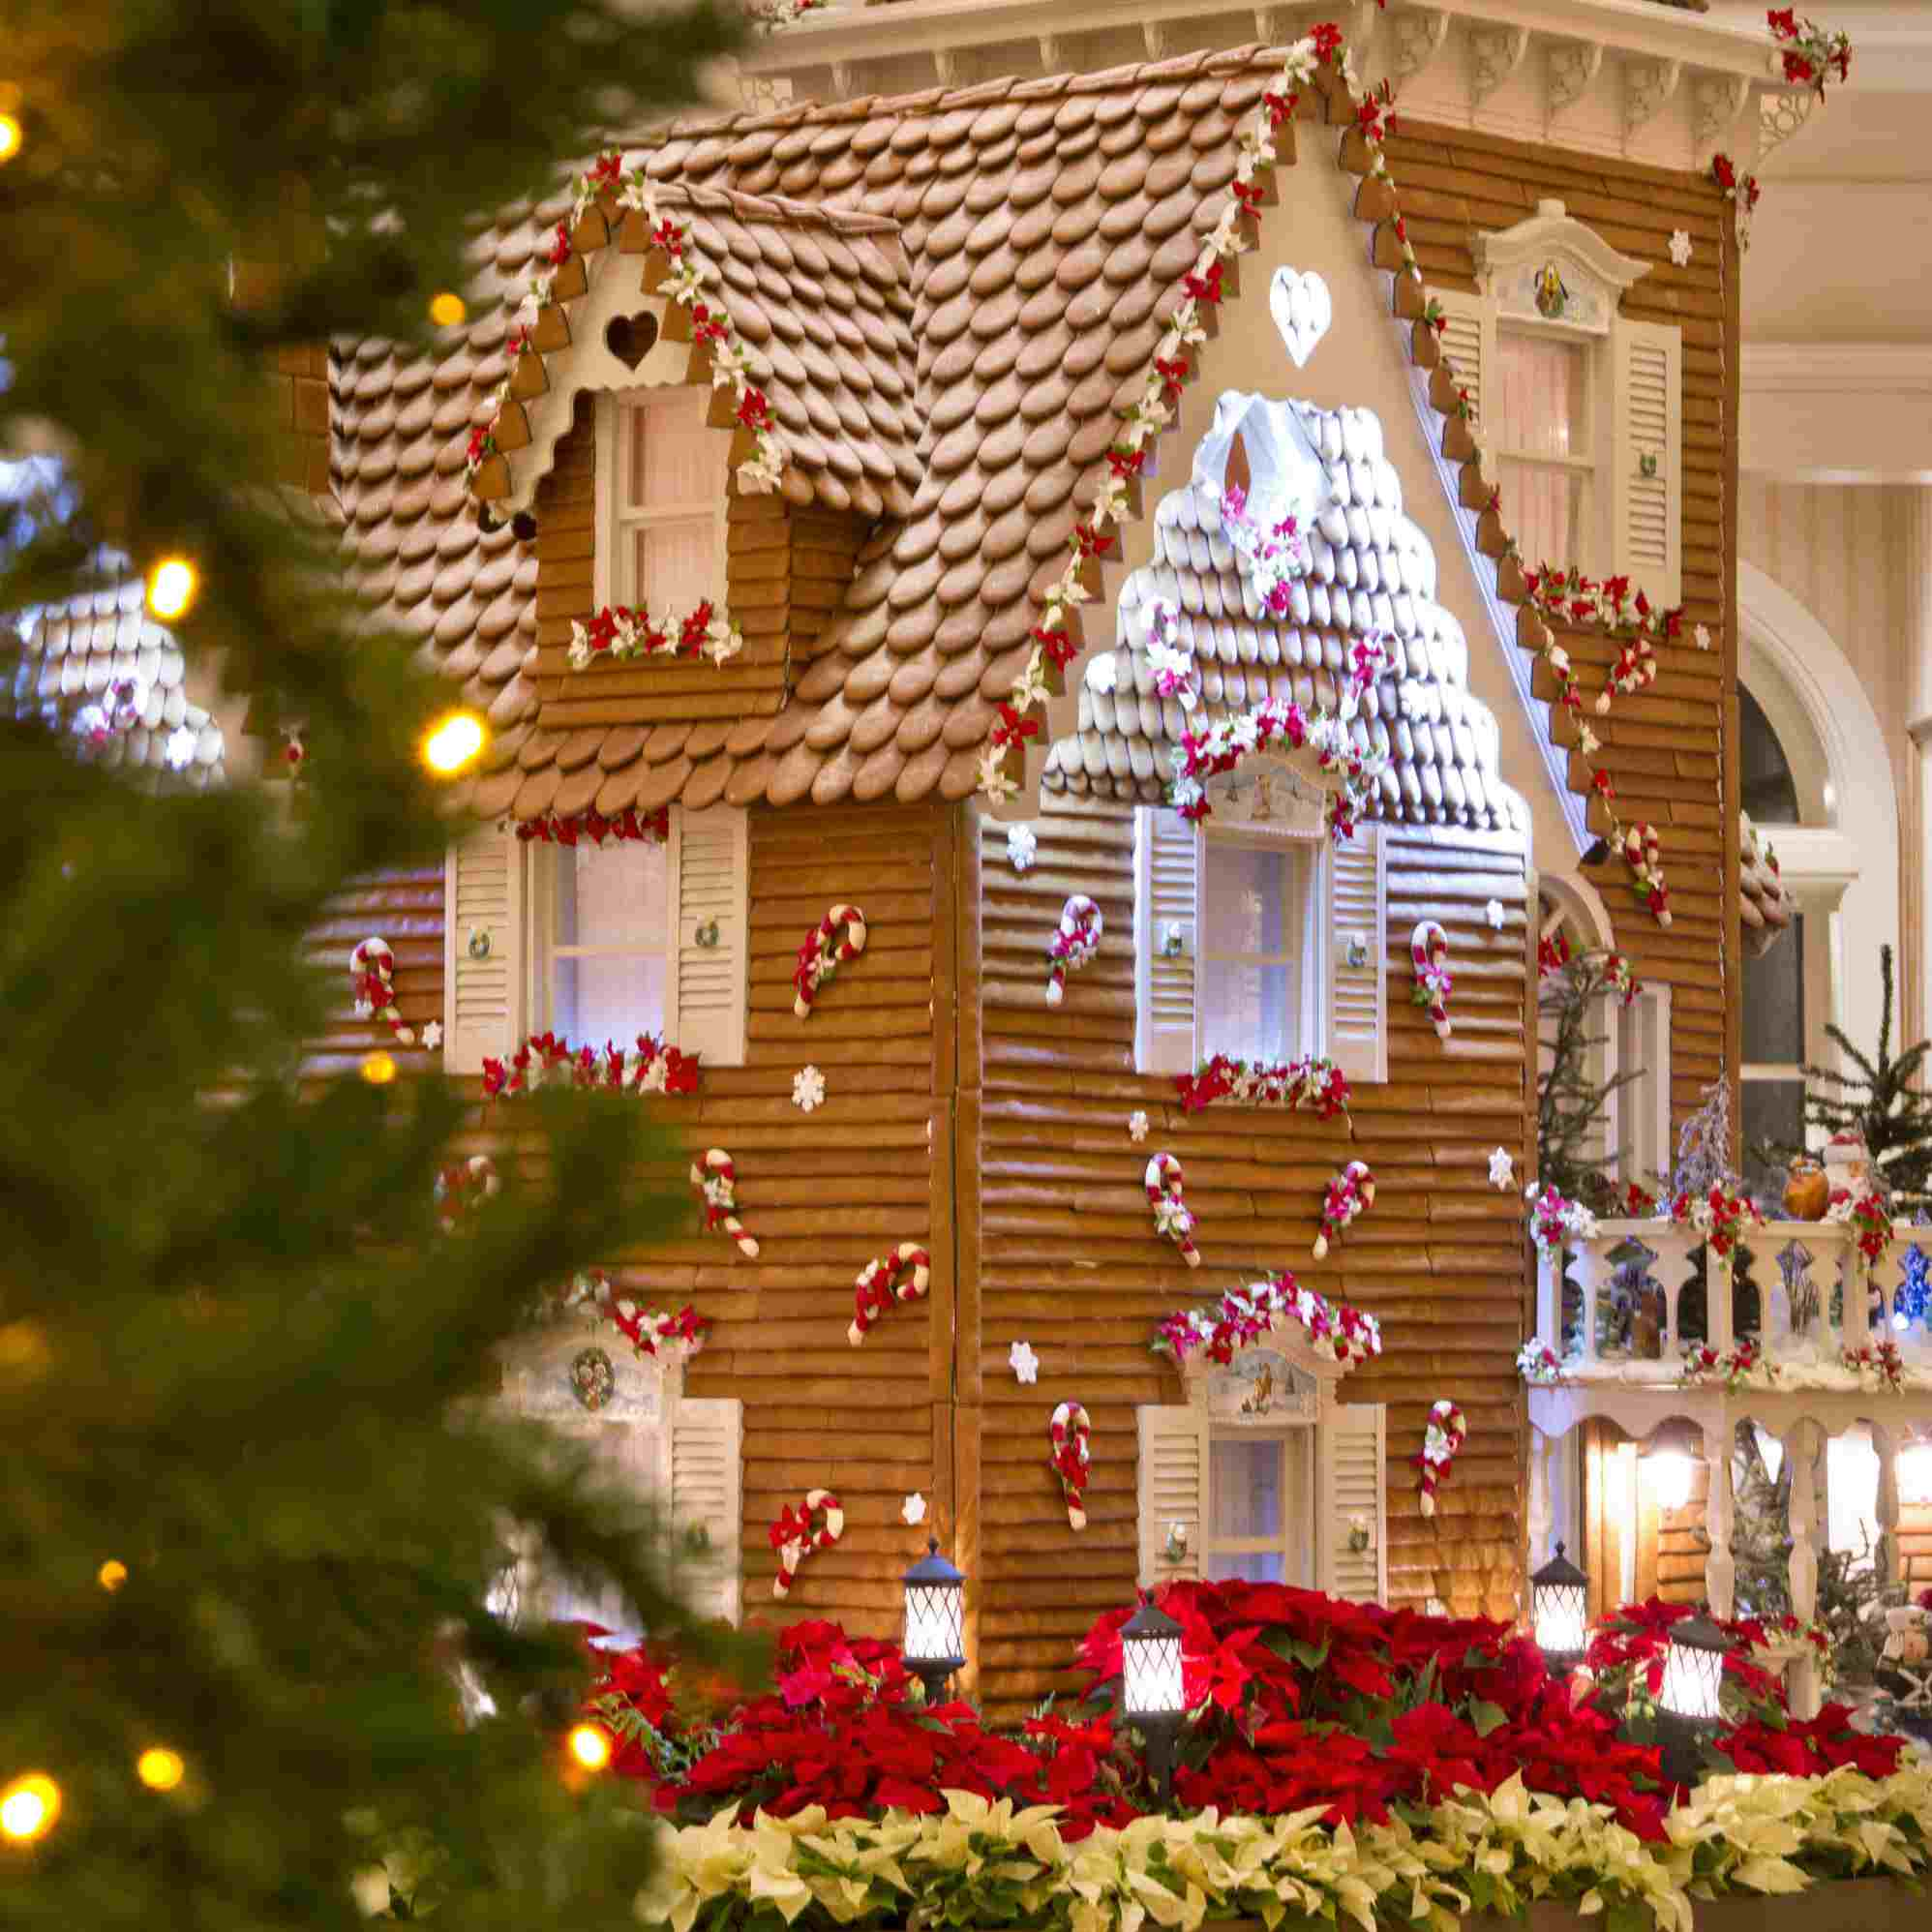 Gingerbread house in the lobby of the grand floridian resort